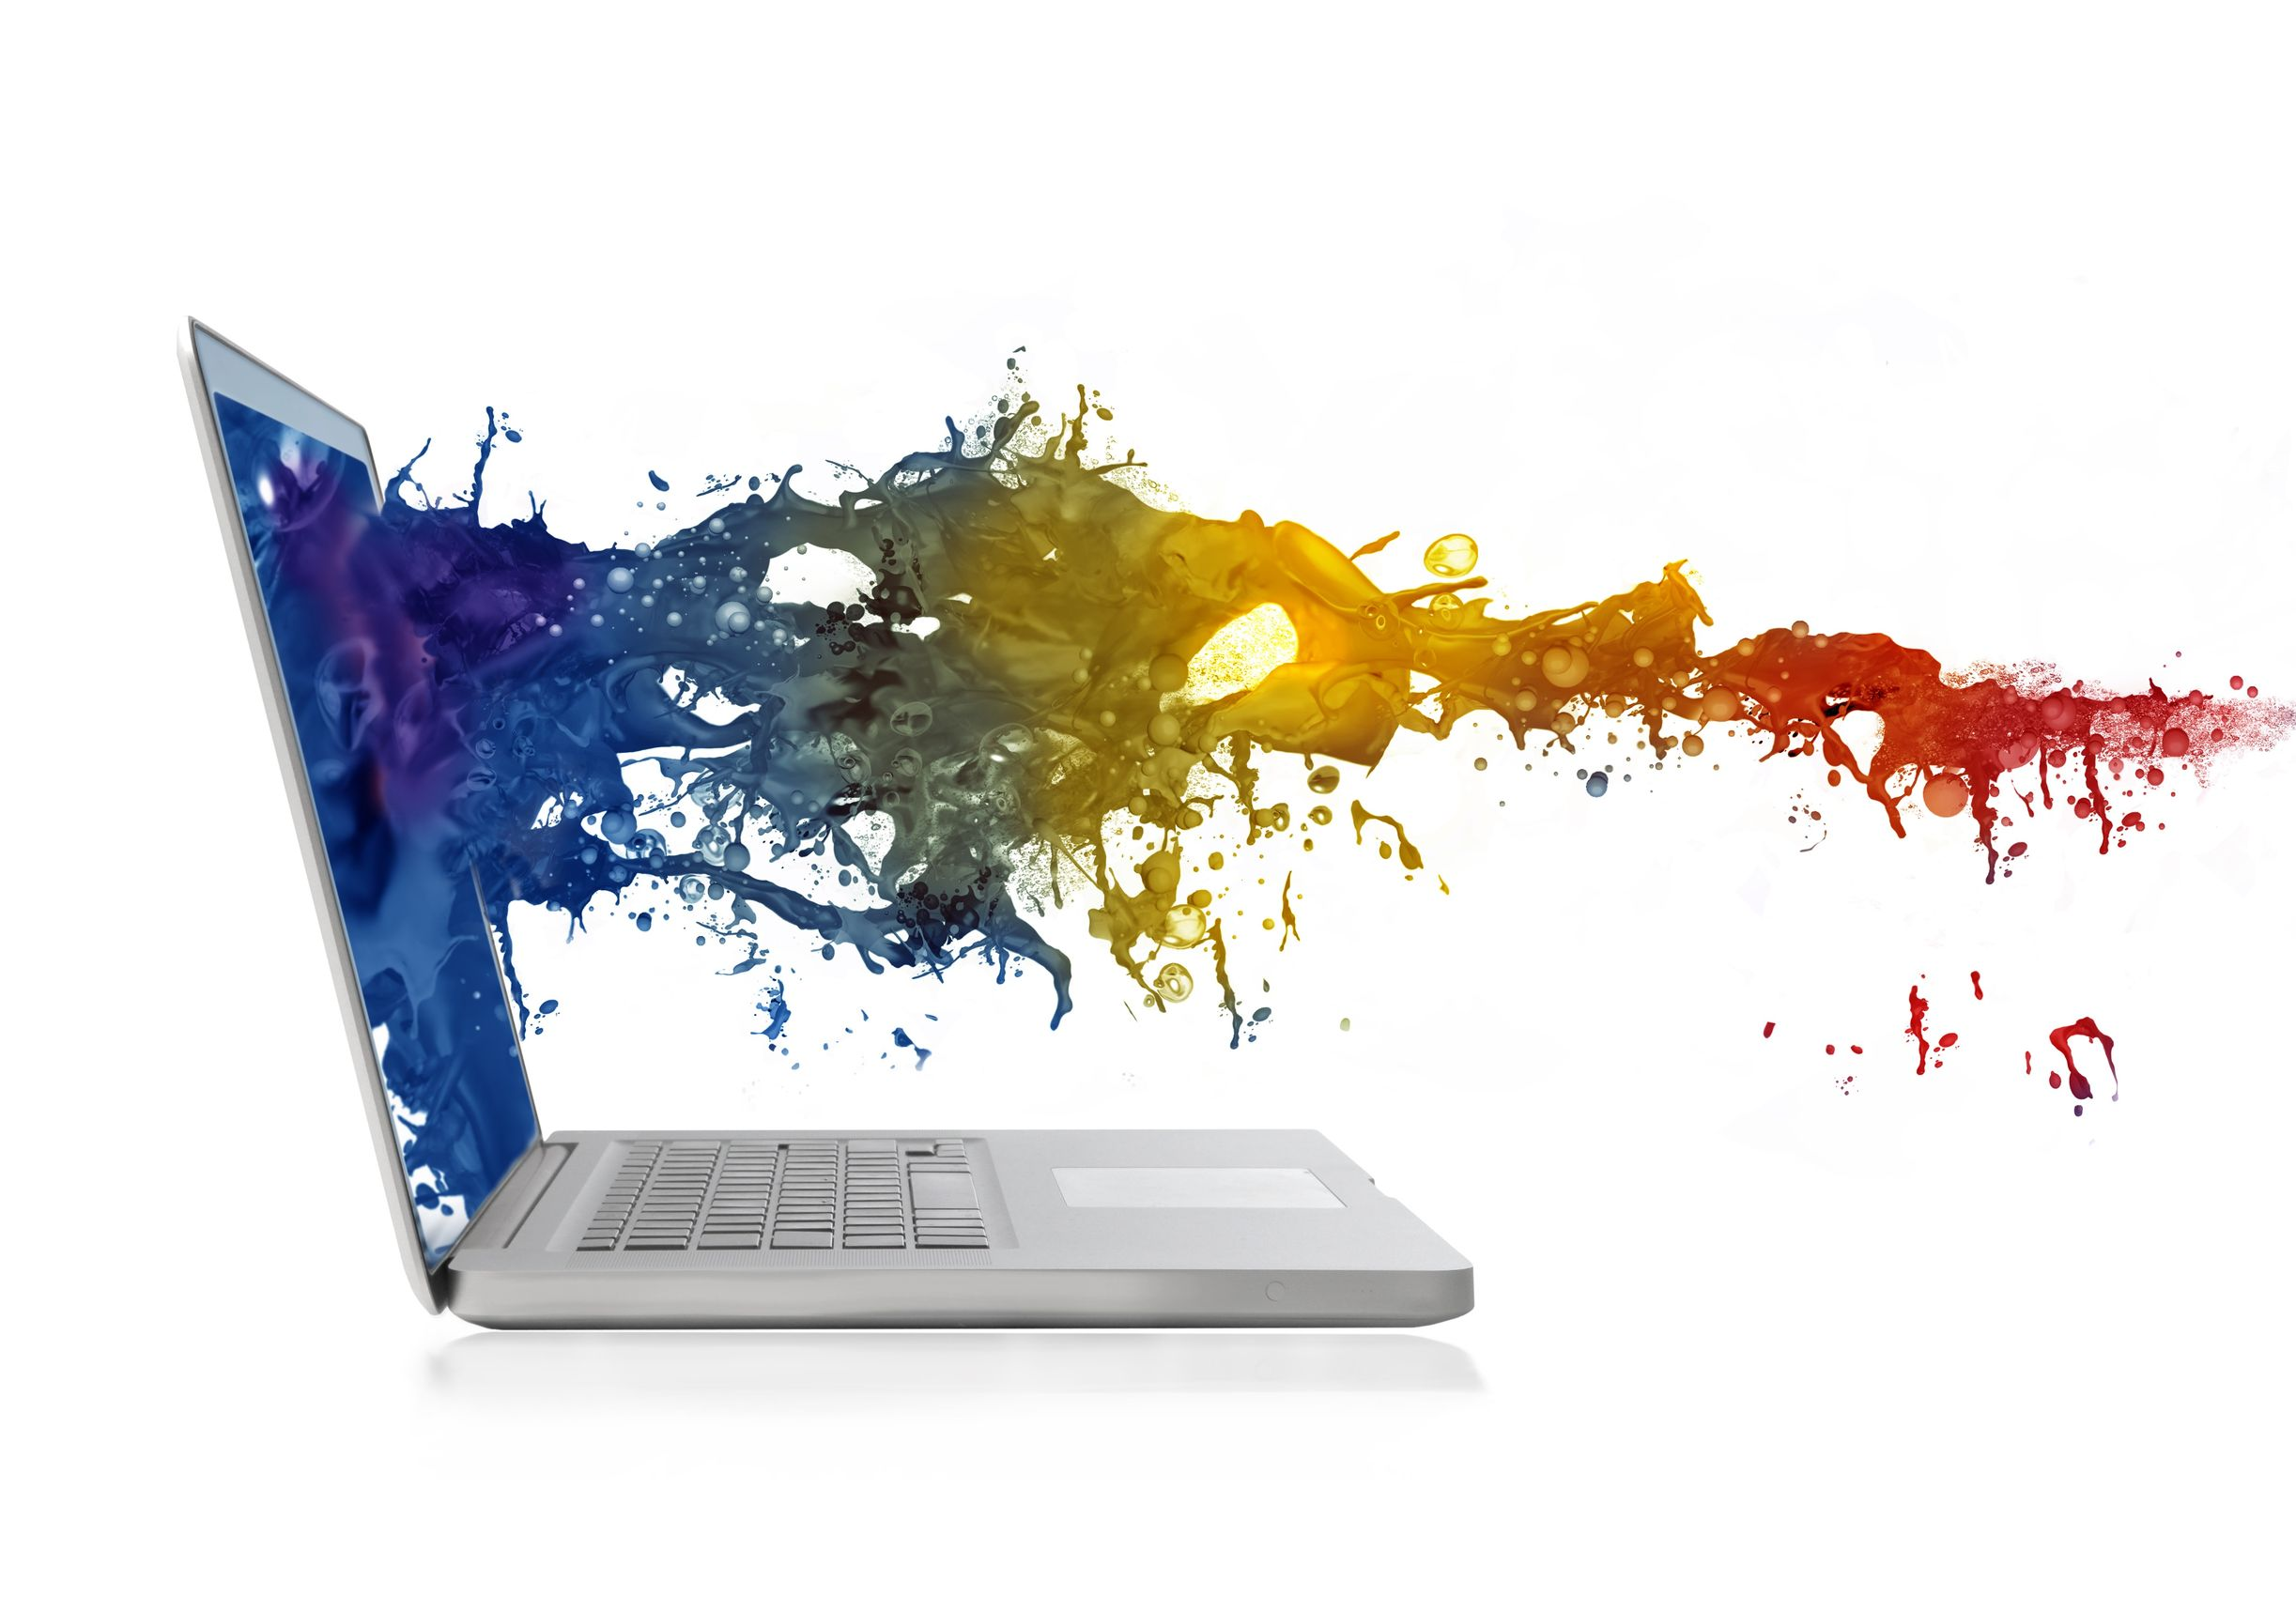 colored paint coming out of the screen of a laptop